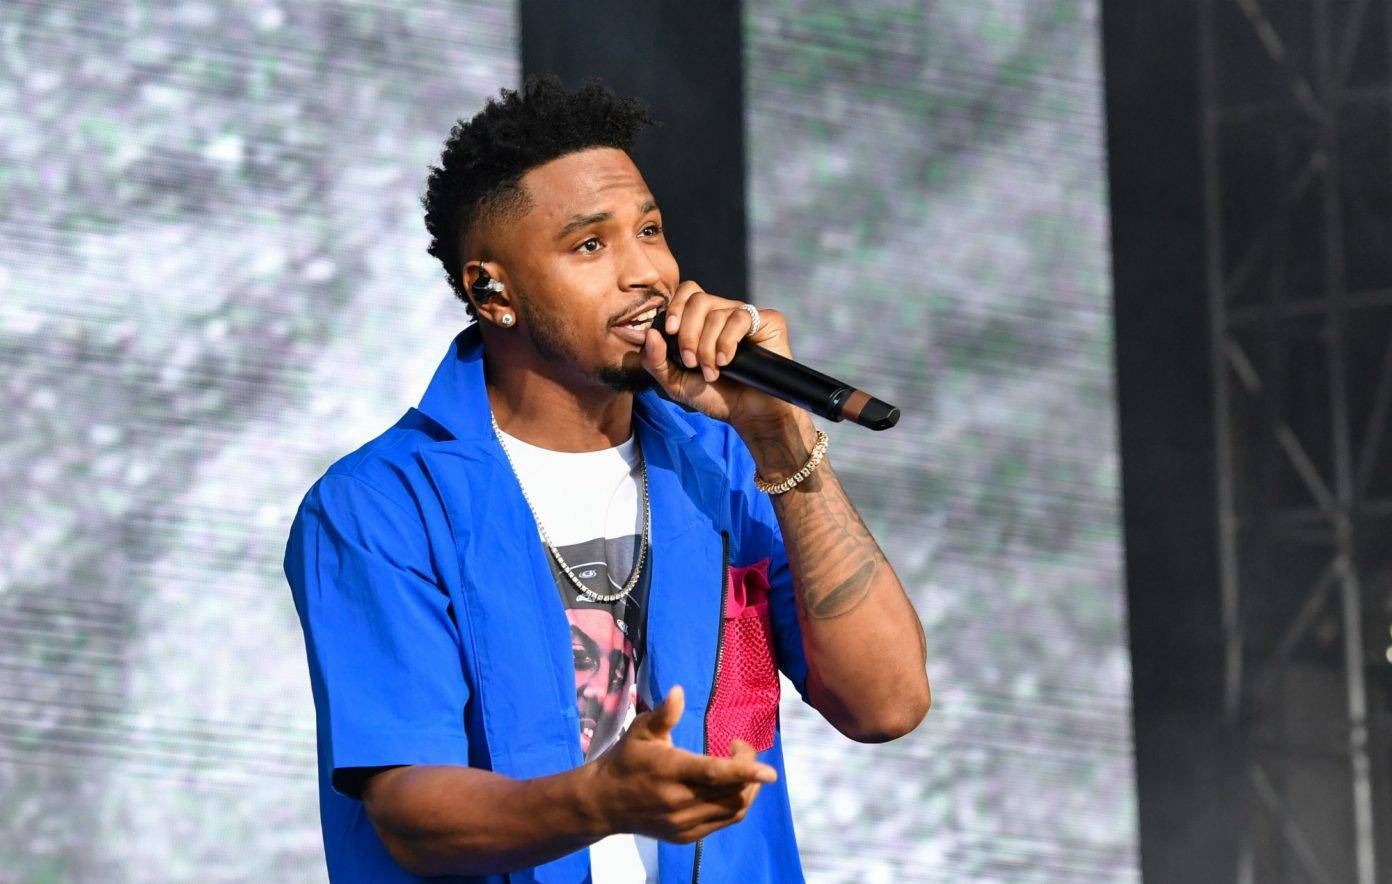 Trey Songz Arrested For Assaulting A Police Officer At NFL Game